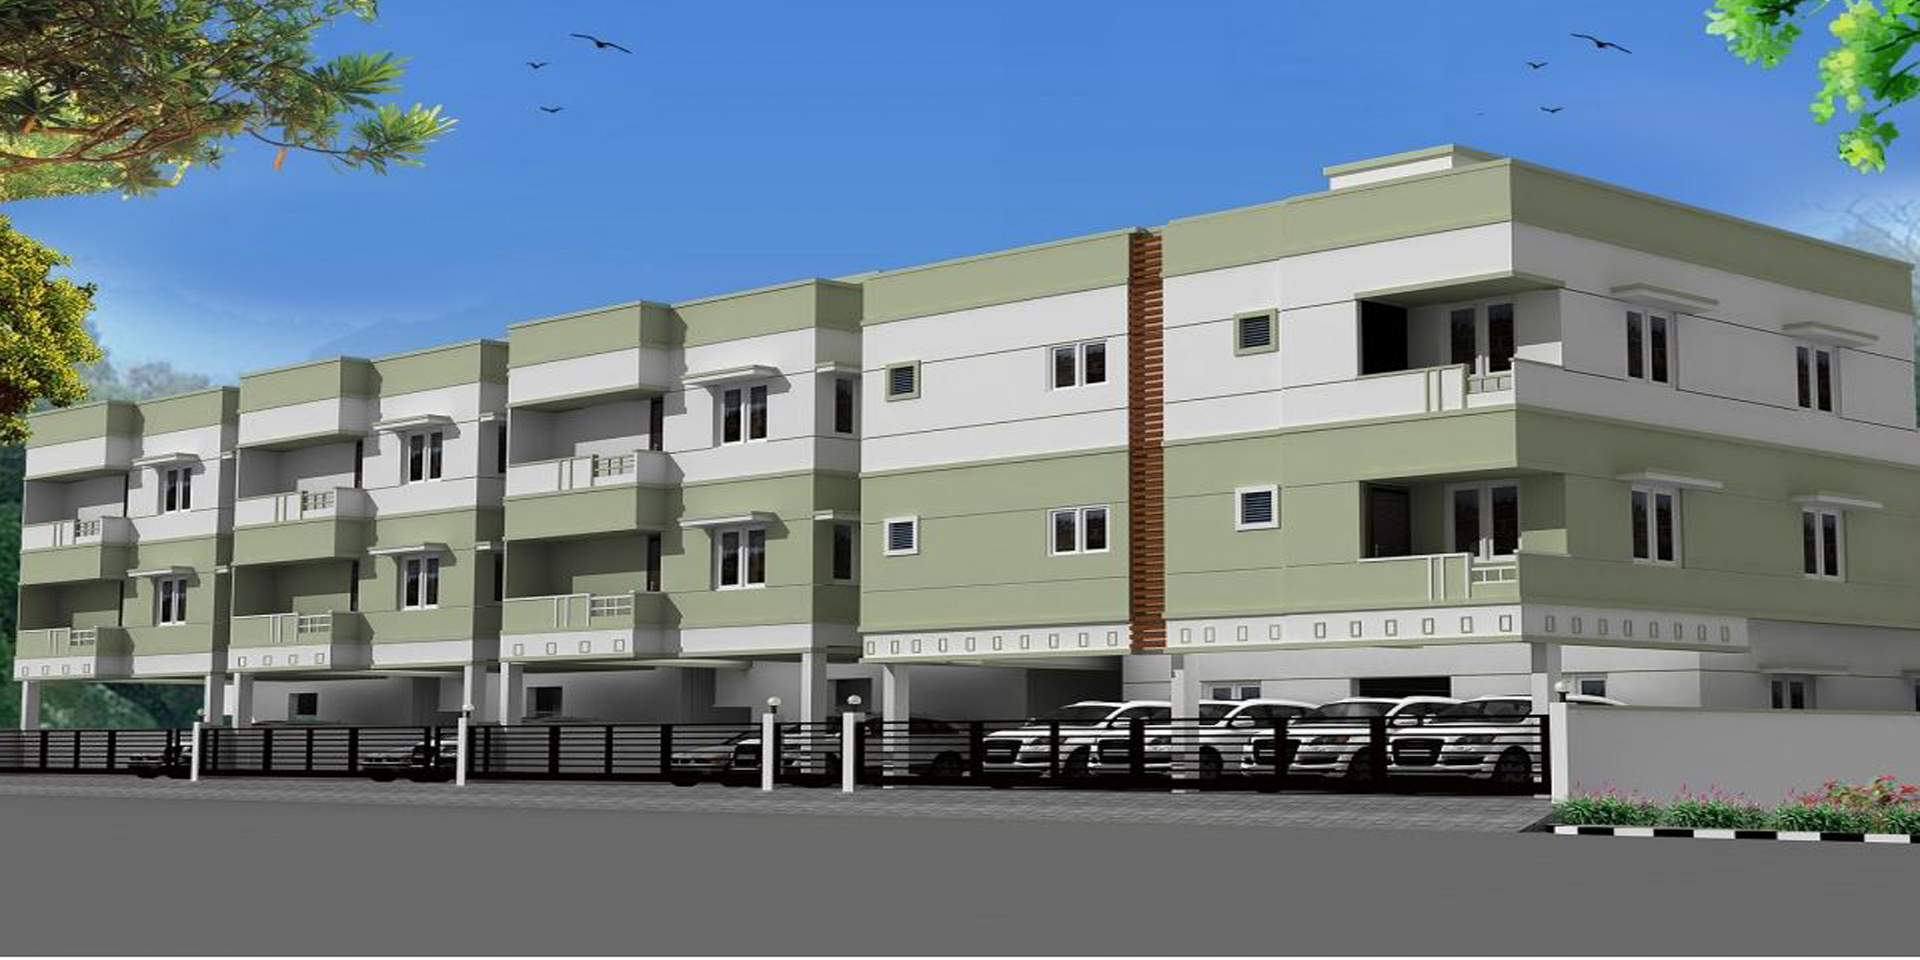 Flats for sale in CMR Sevarkodi Phase 2 Kelambakkam